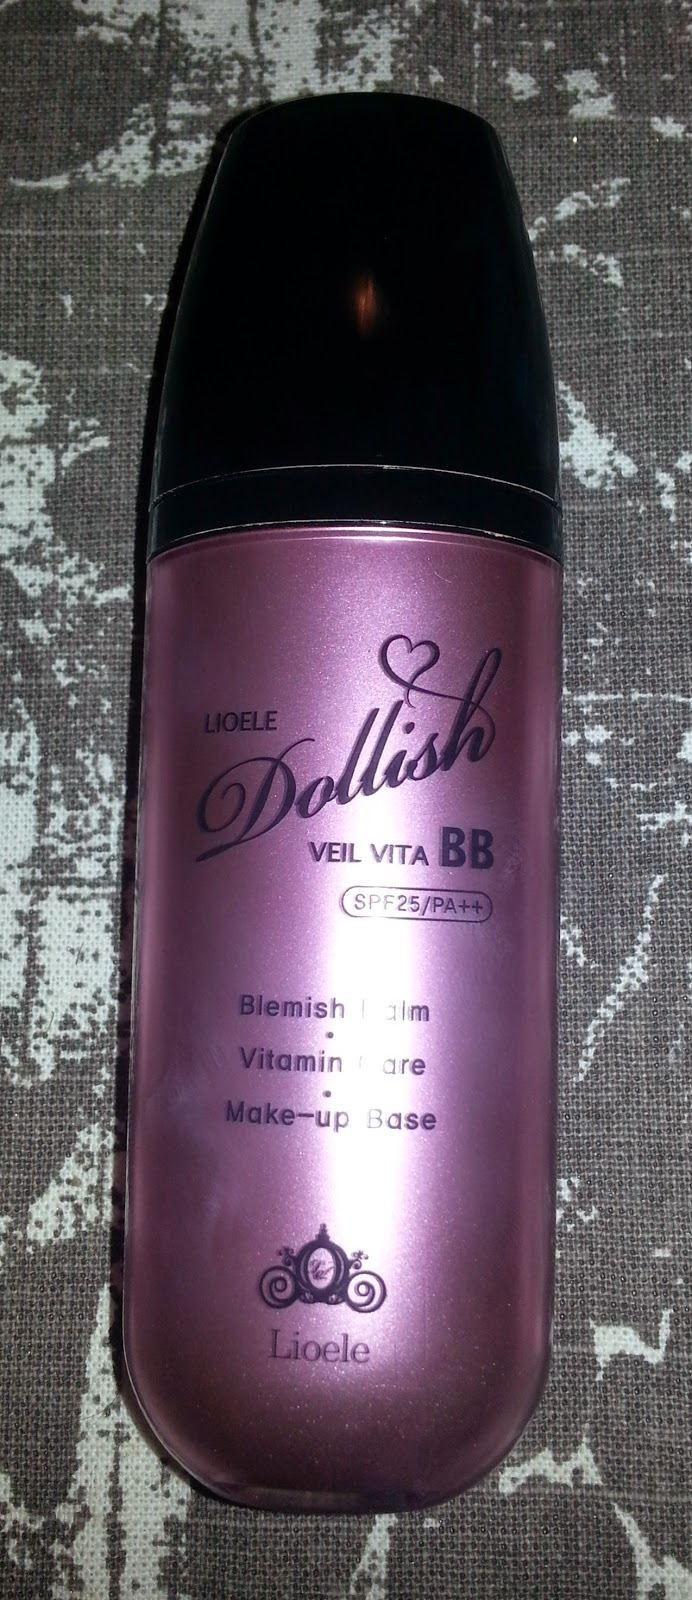 Liole Dollish Veil Vita BB Cream in Gorgeous Purple